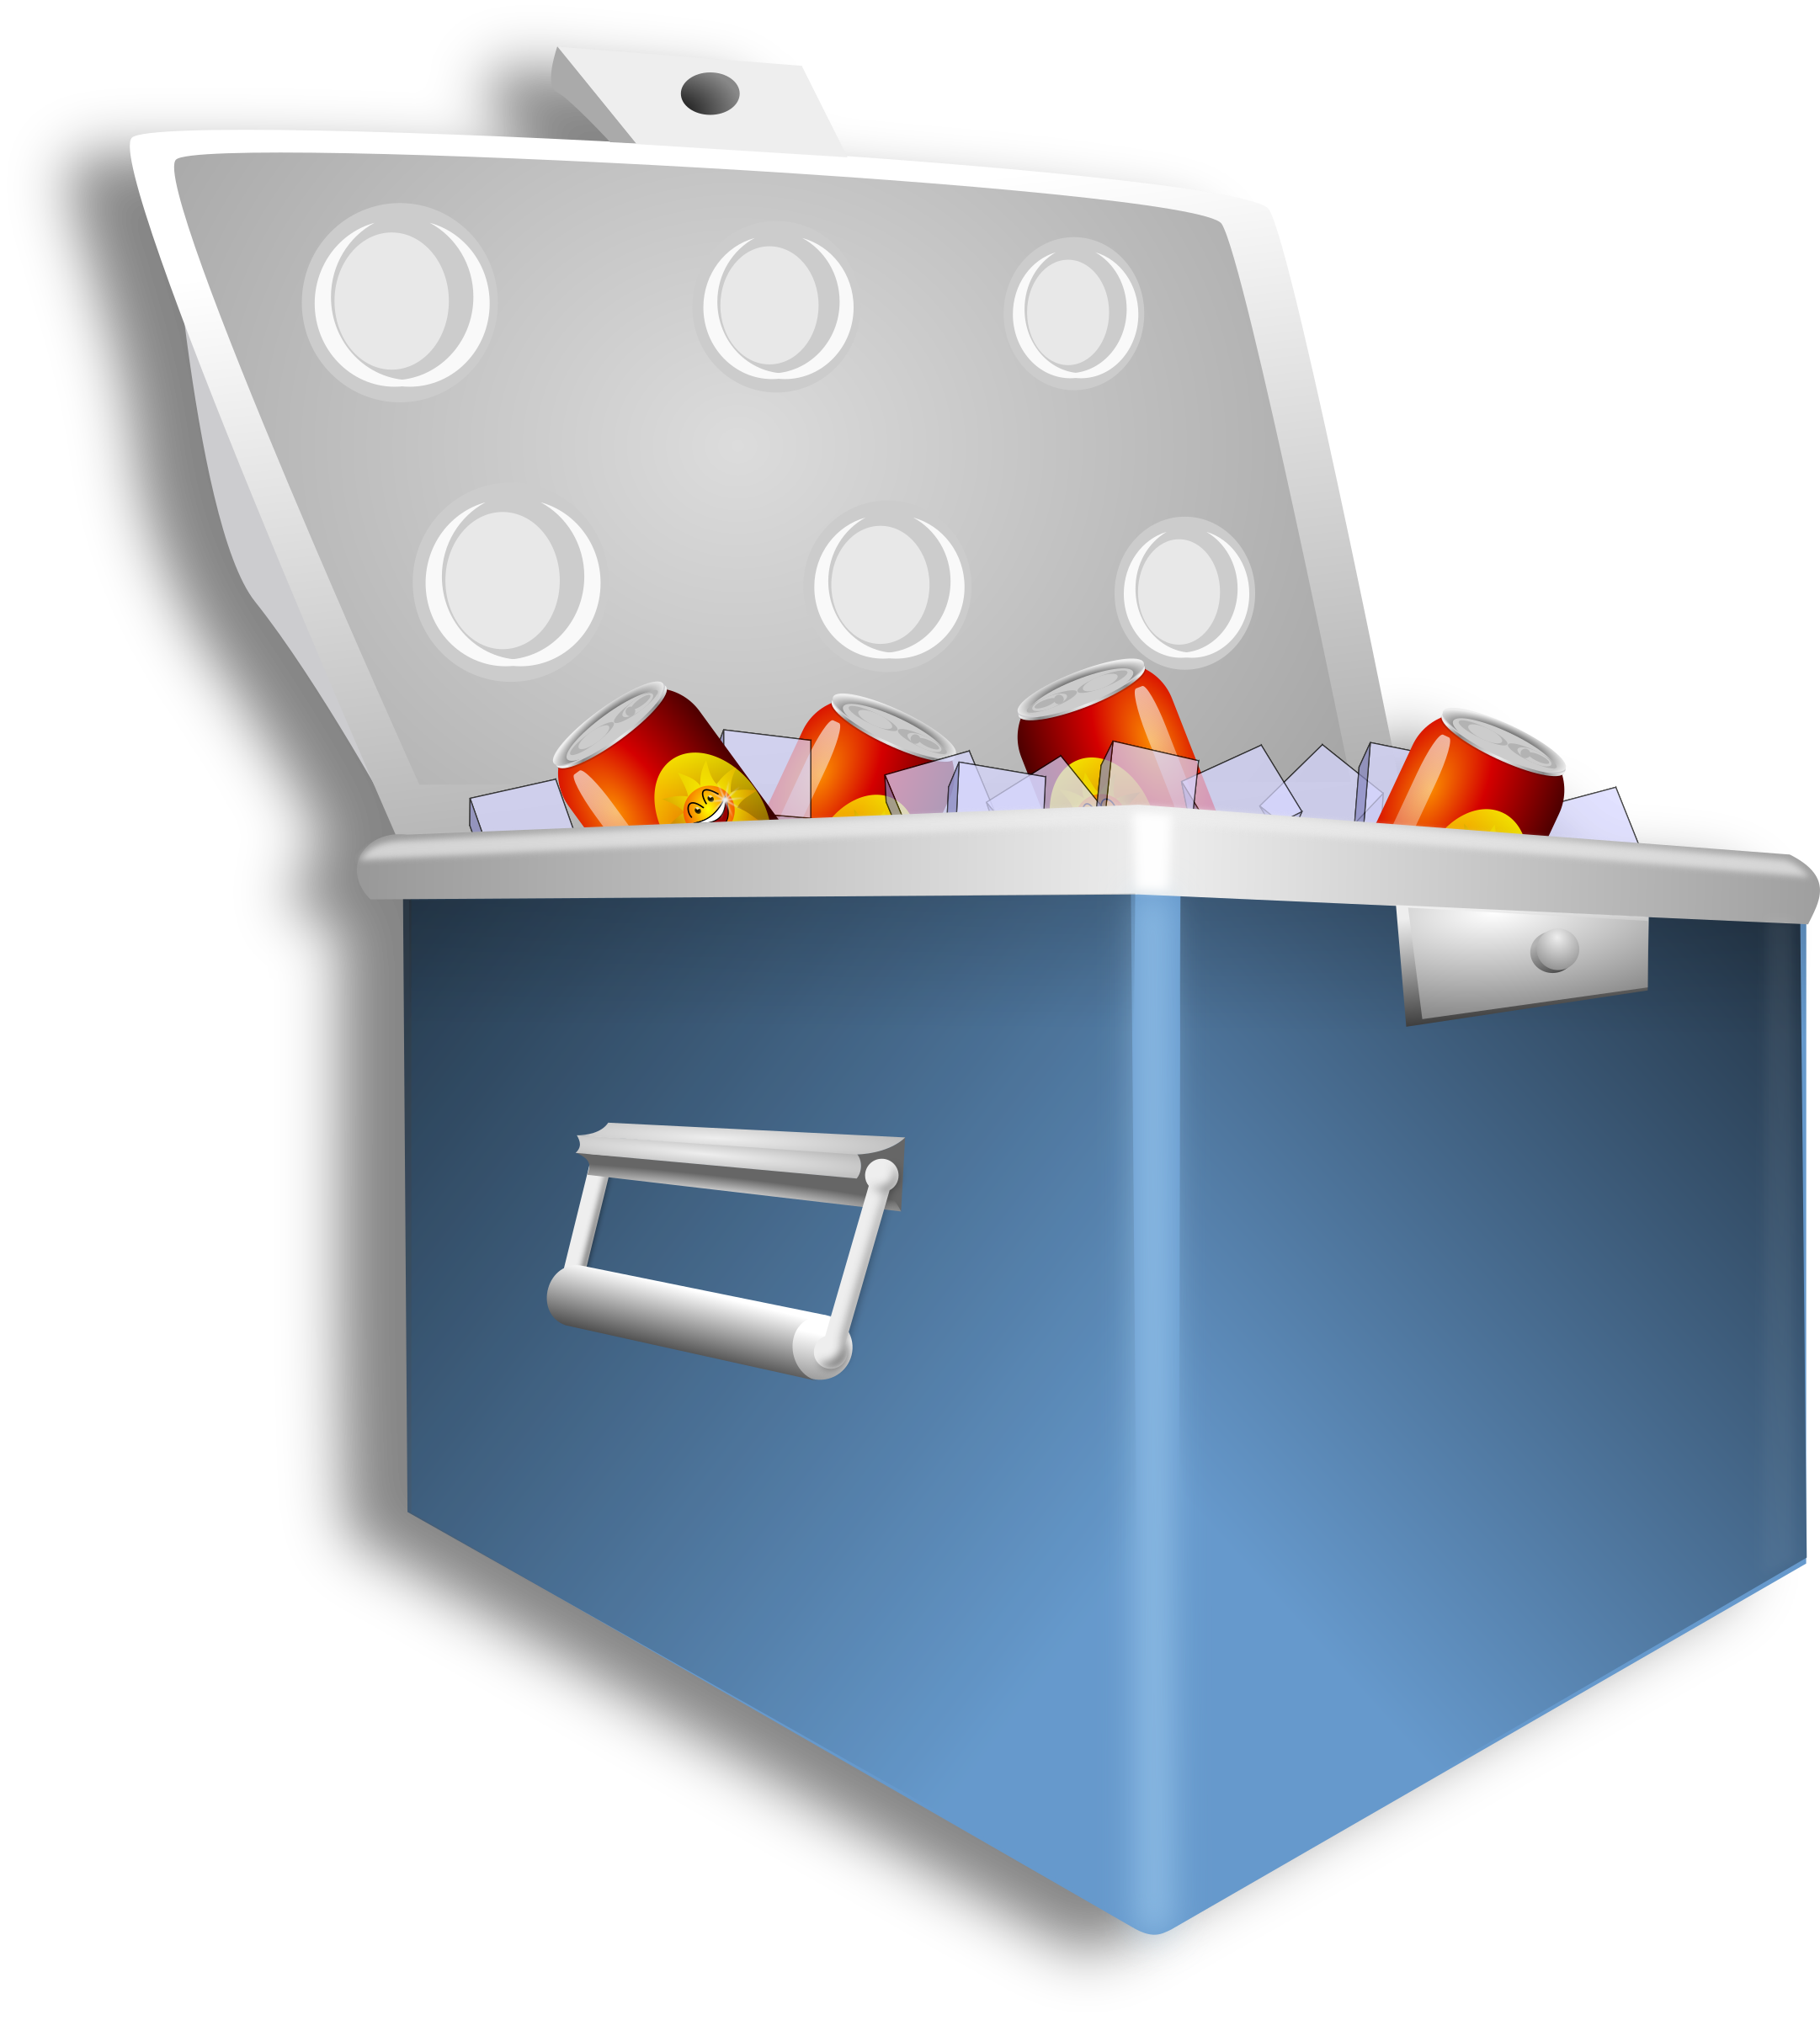 Ice chest png. Cooler remix icons free